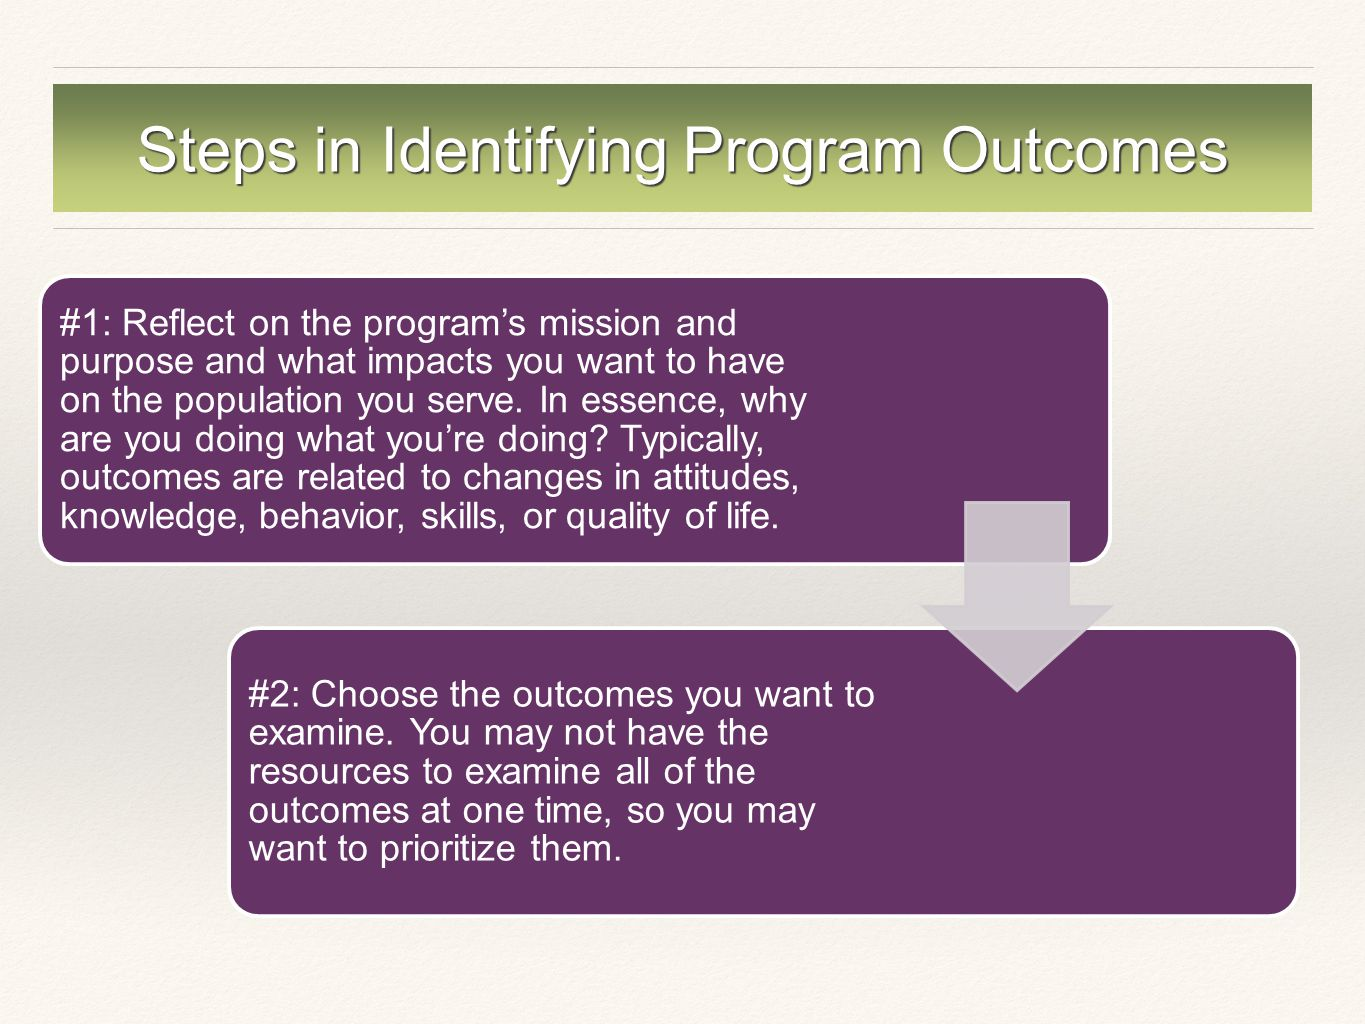 Steps in Identifying Program Outcomes #1: Reflect on the program's mission and purpose and what impacts you want to have on the population you serve.